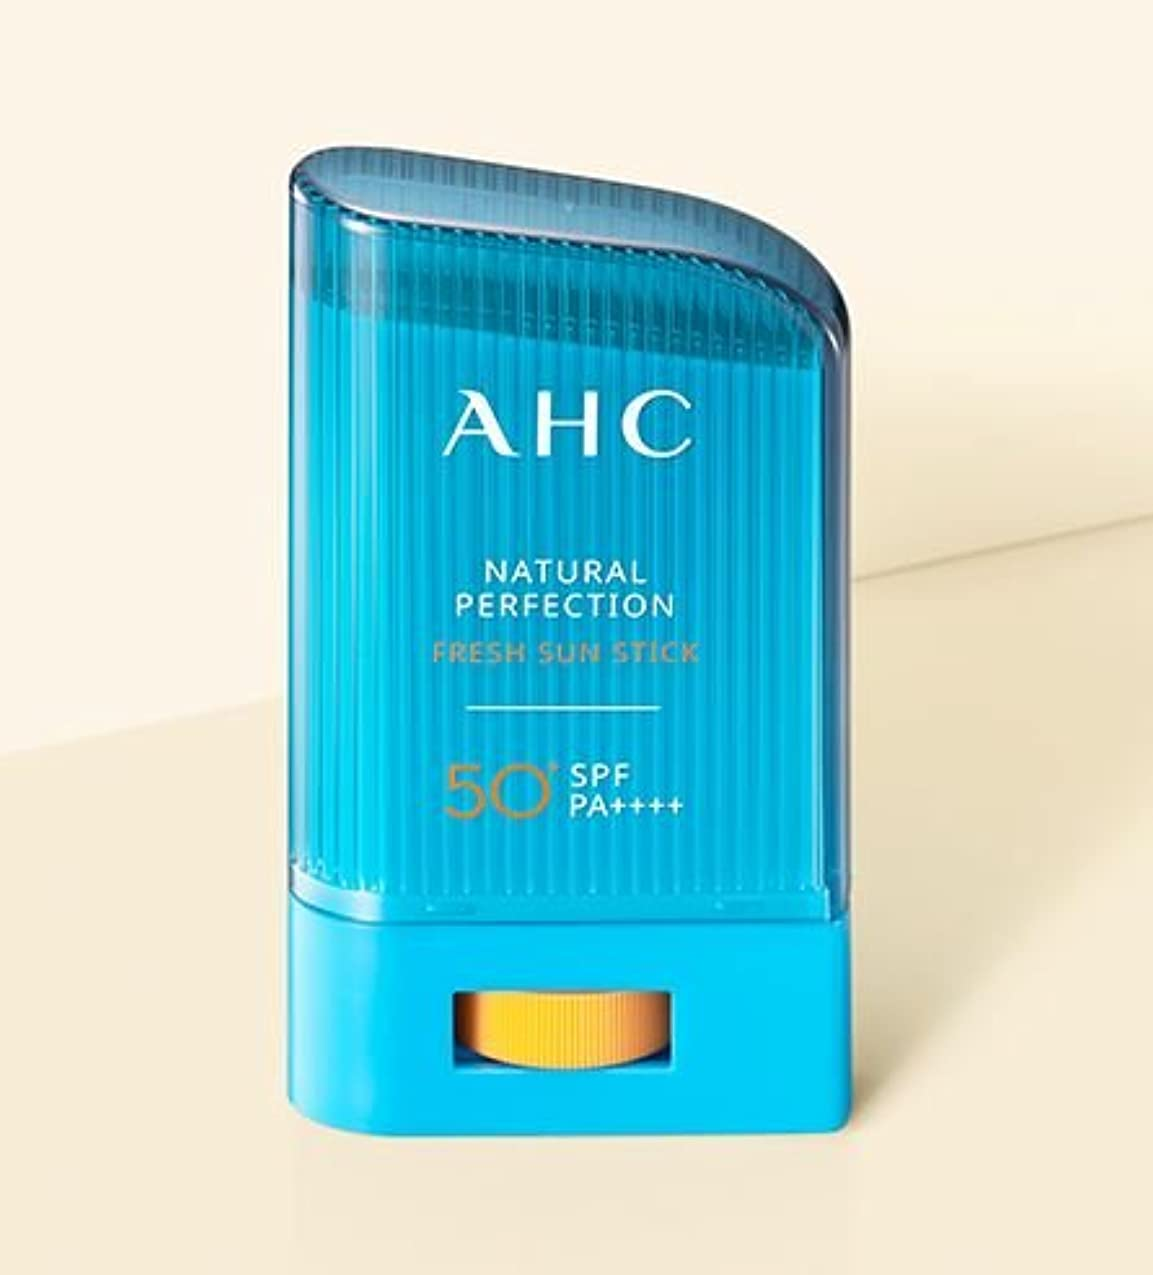 パーツ生産的コーナーAHC Natural perfection fresh sun stick (22g) [並行輸入品]